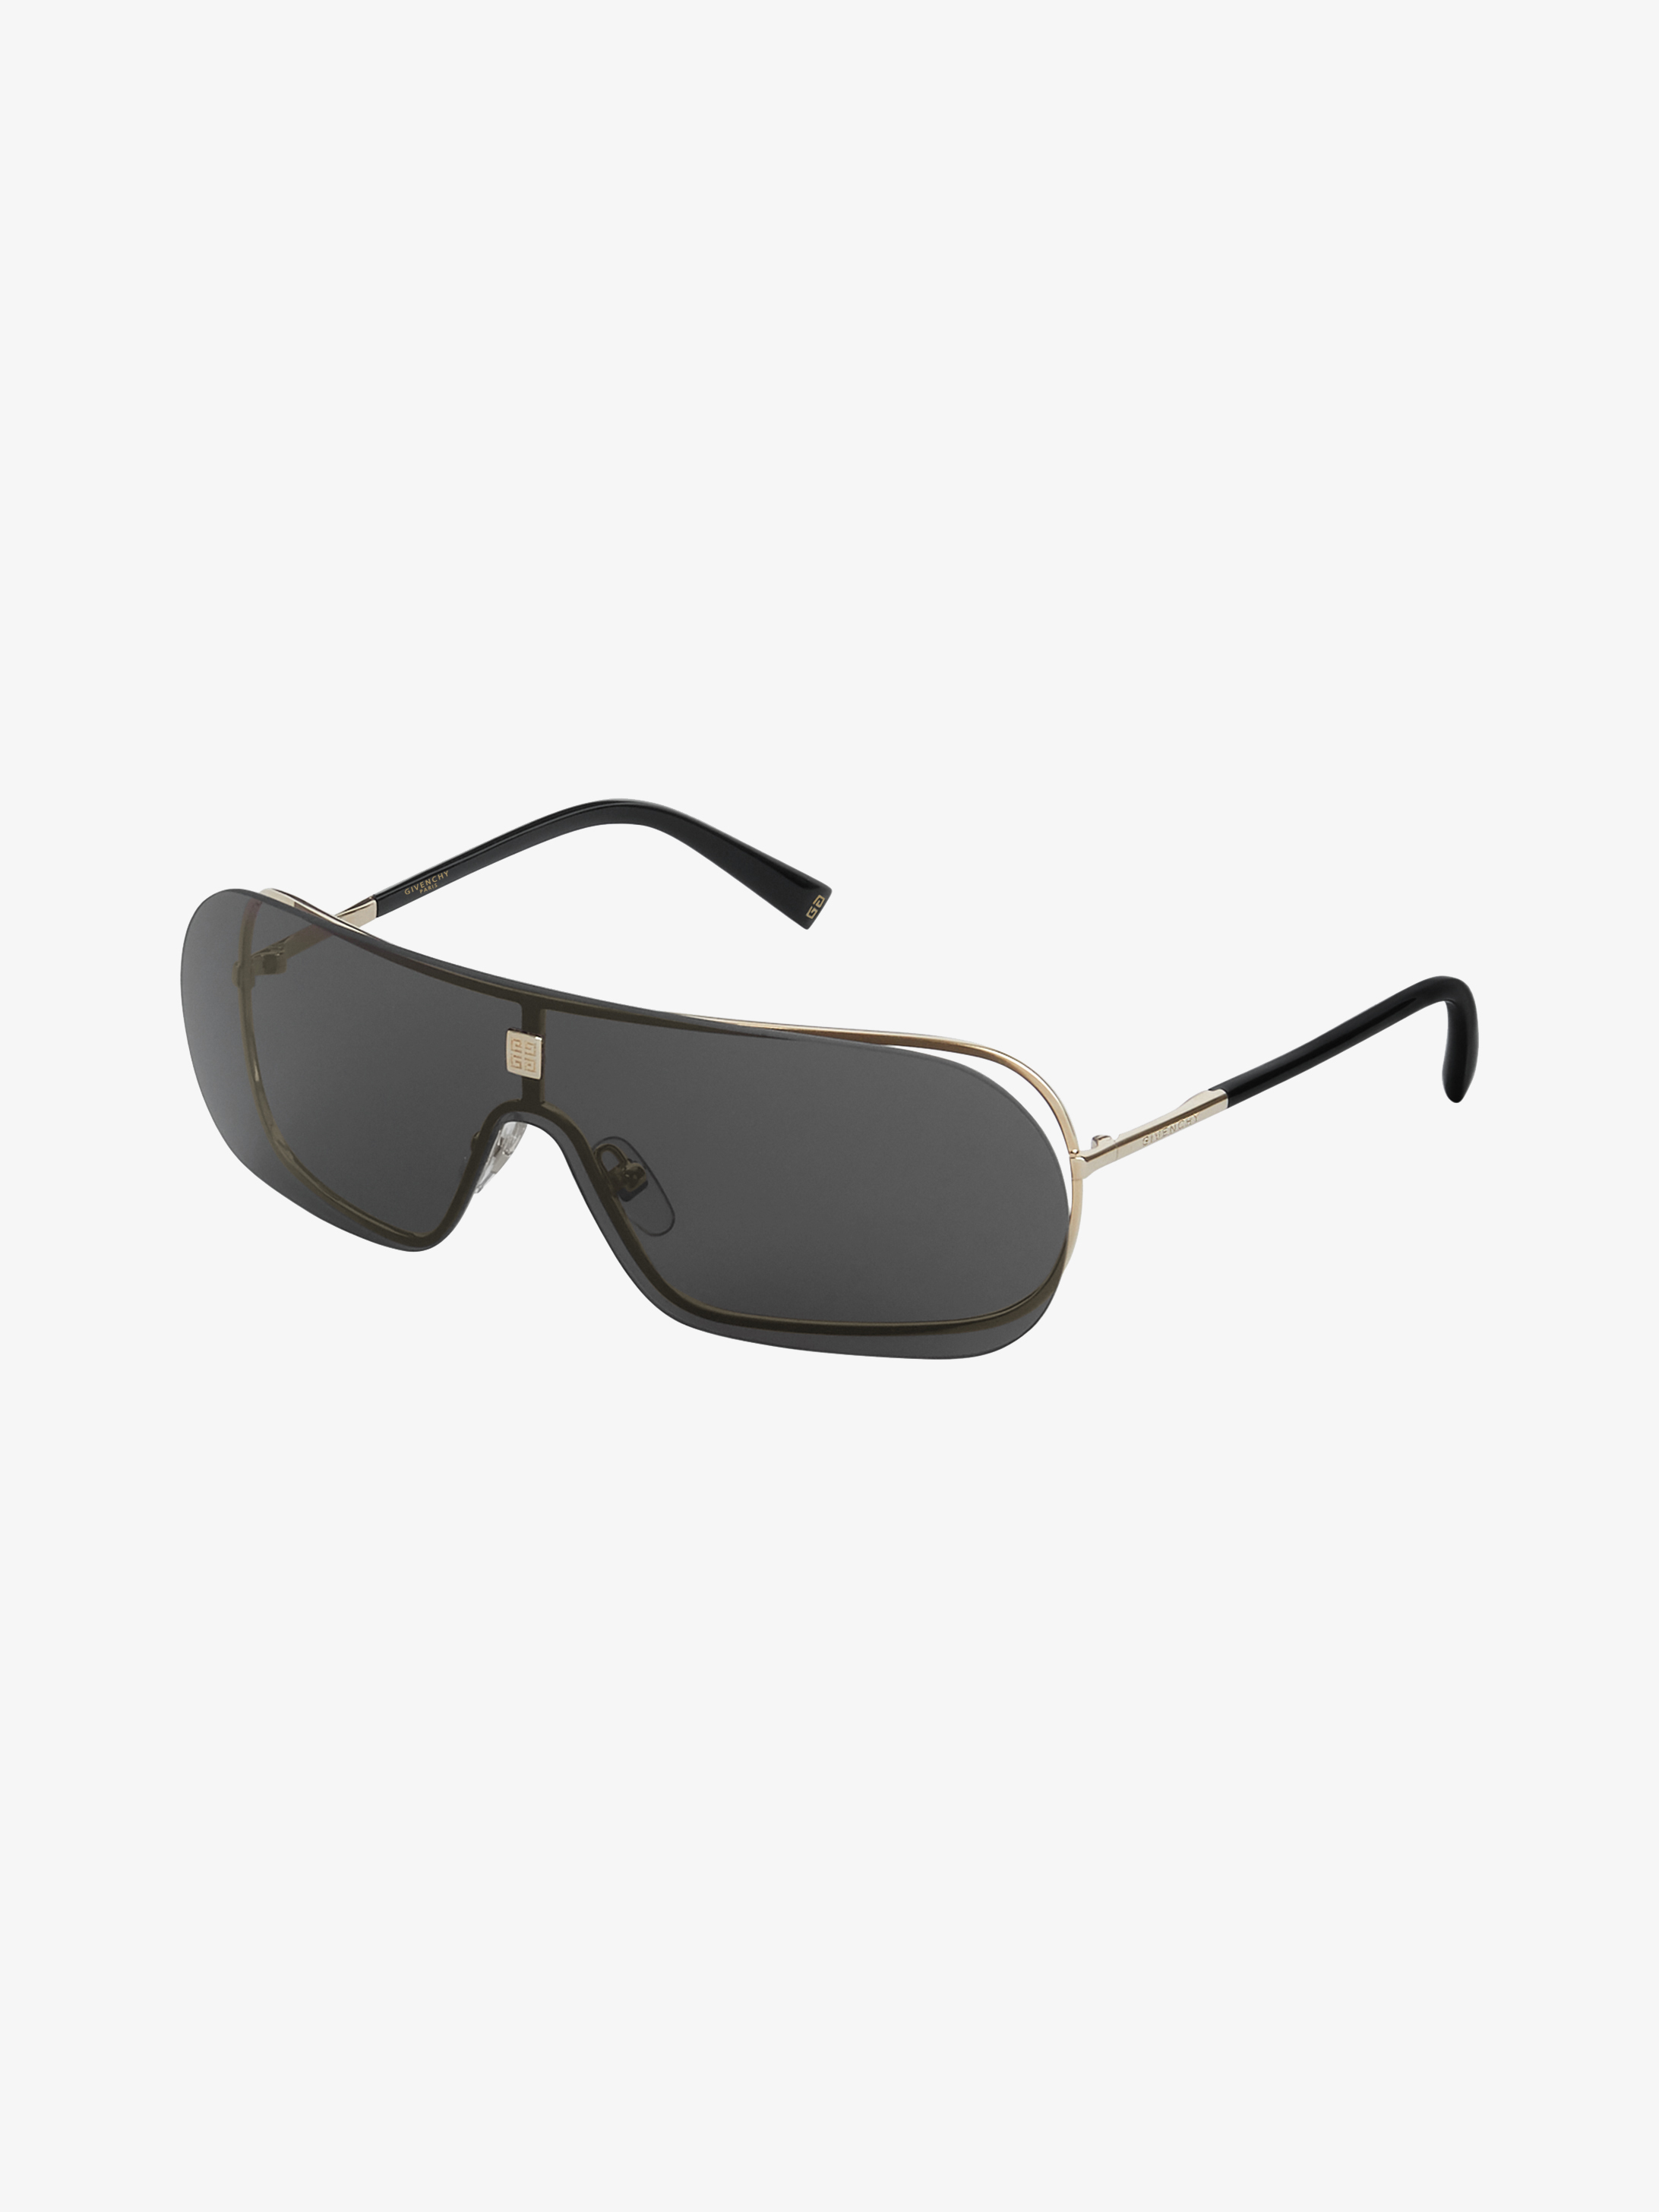 Unisex GV Eclipse sunglasses in metal